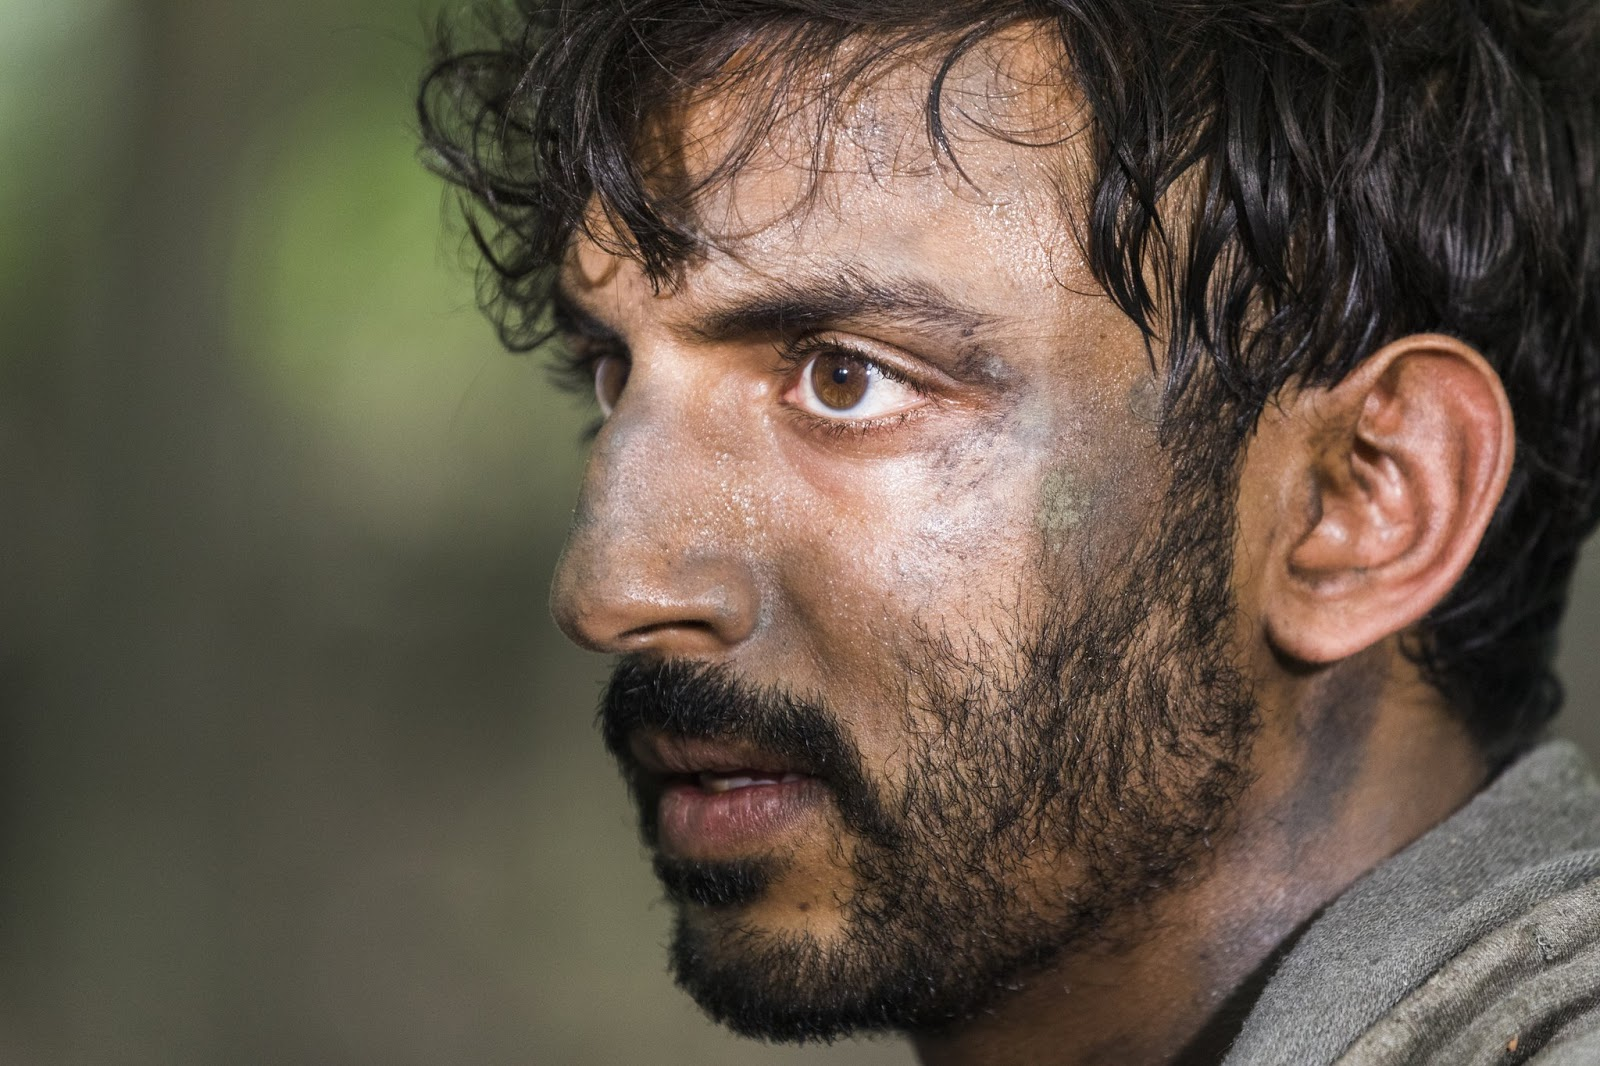 Siddiq en la octava temporada de The Walking Dead